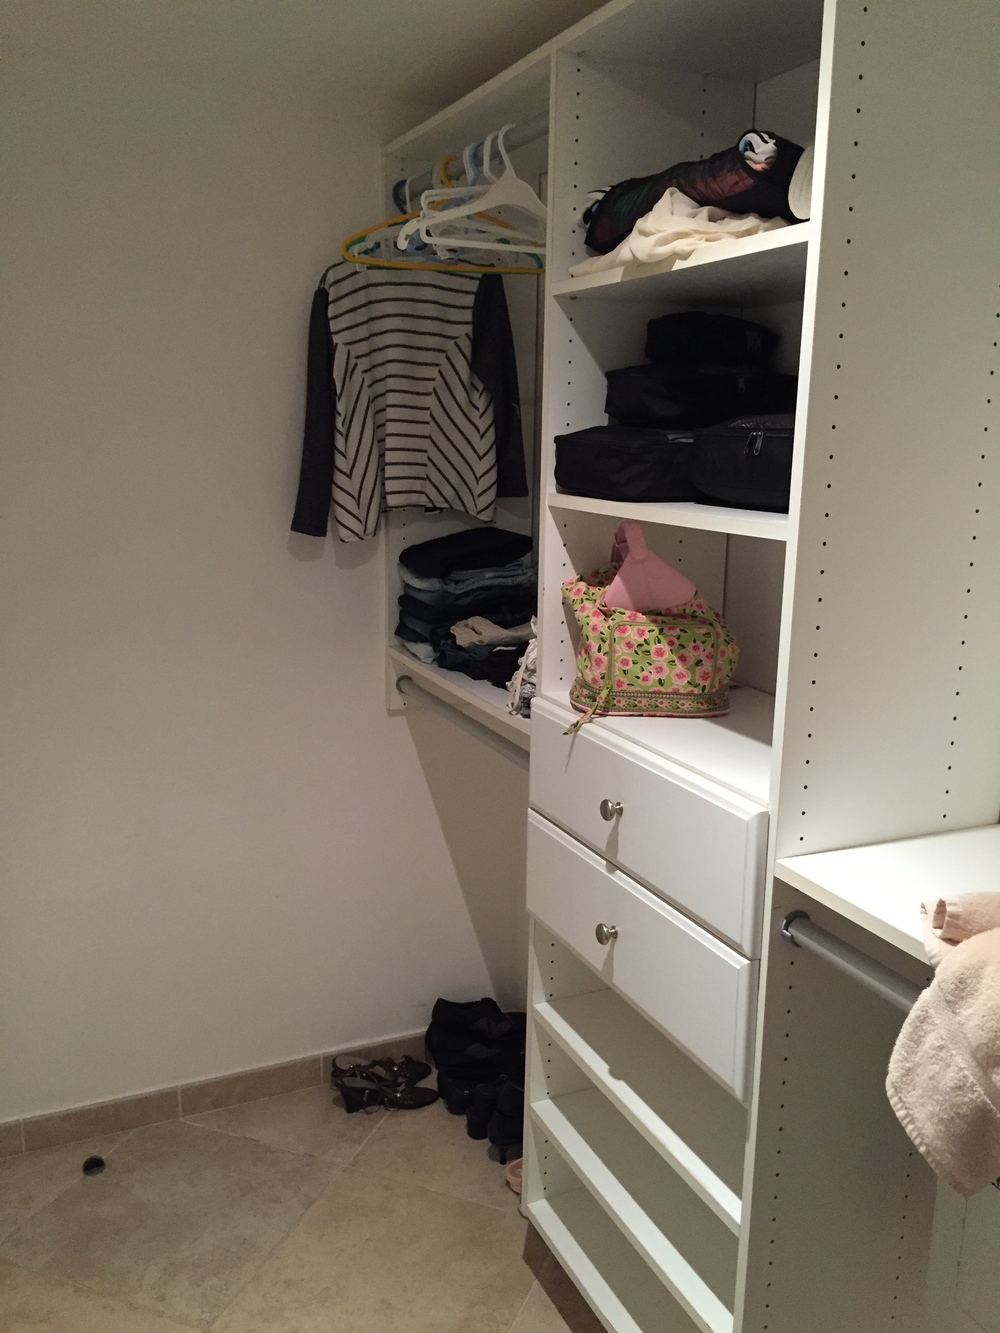 This is the walk in closet at the house I was staying at during vacation. An example of how organized and clutter free one can actually be.